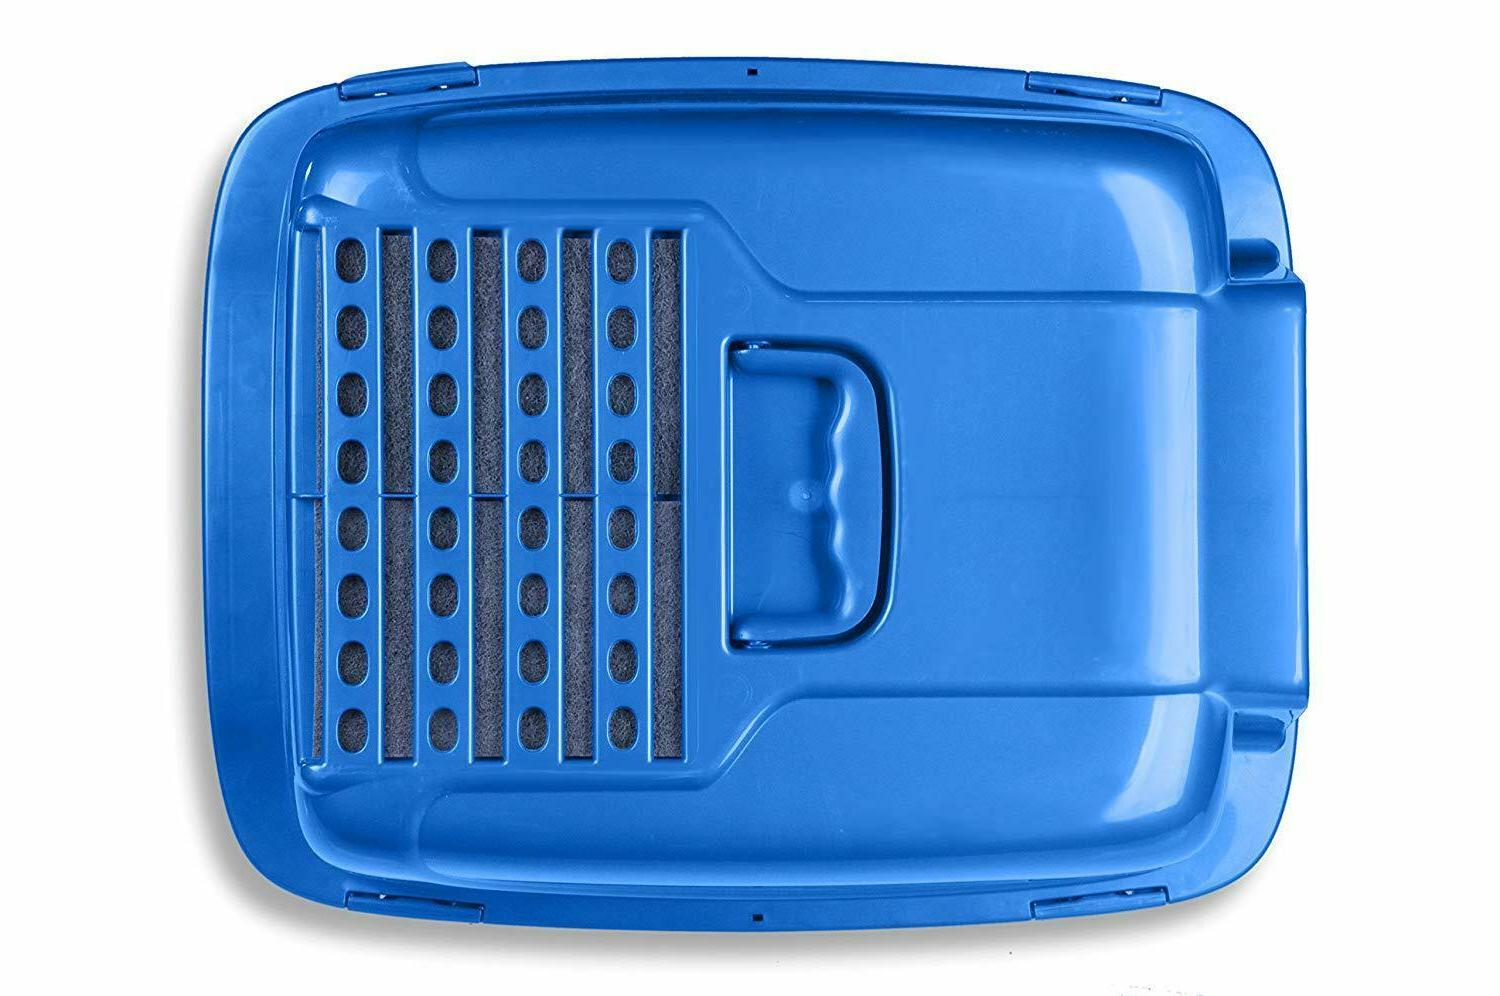 Covered Cat Box Odor Enclosed with Odor